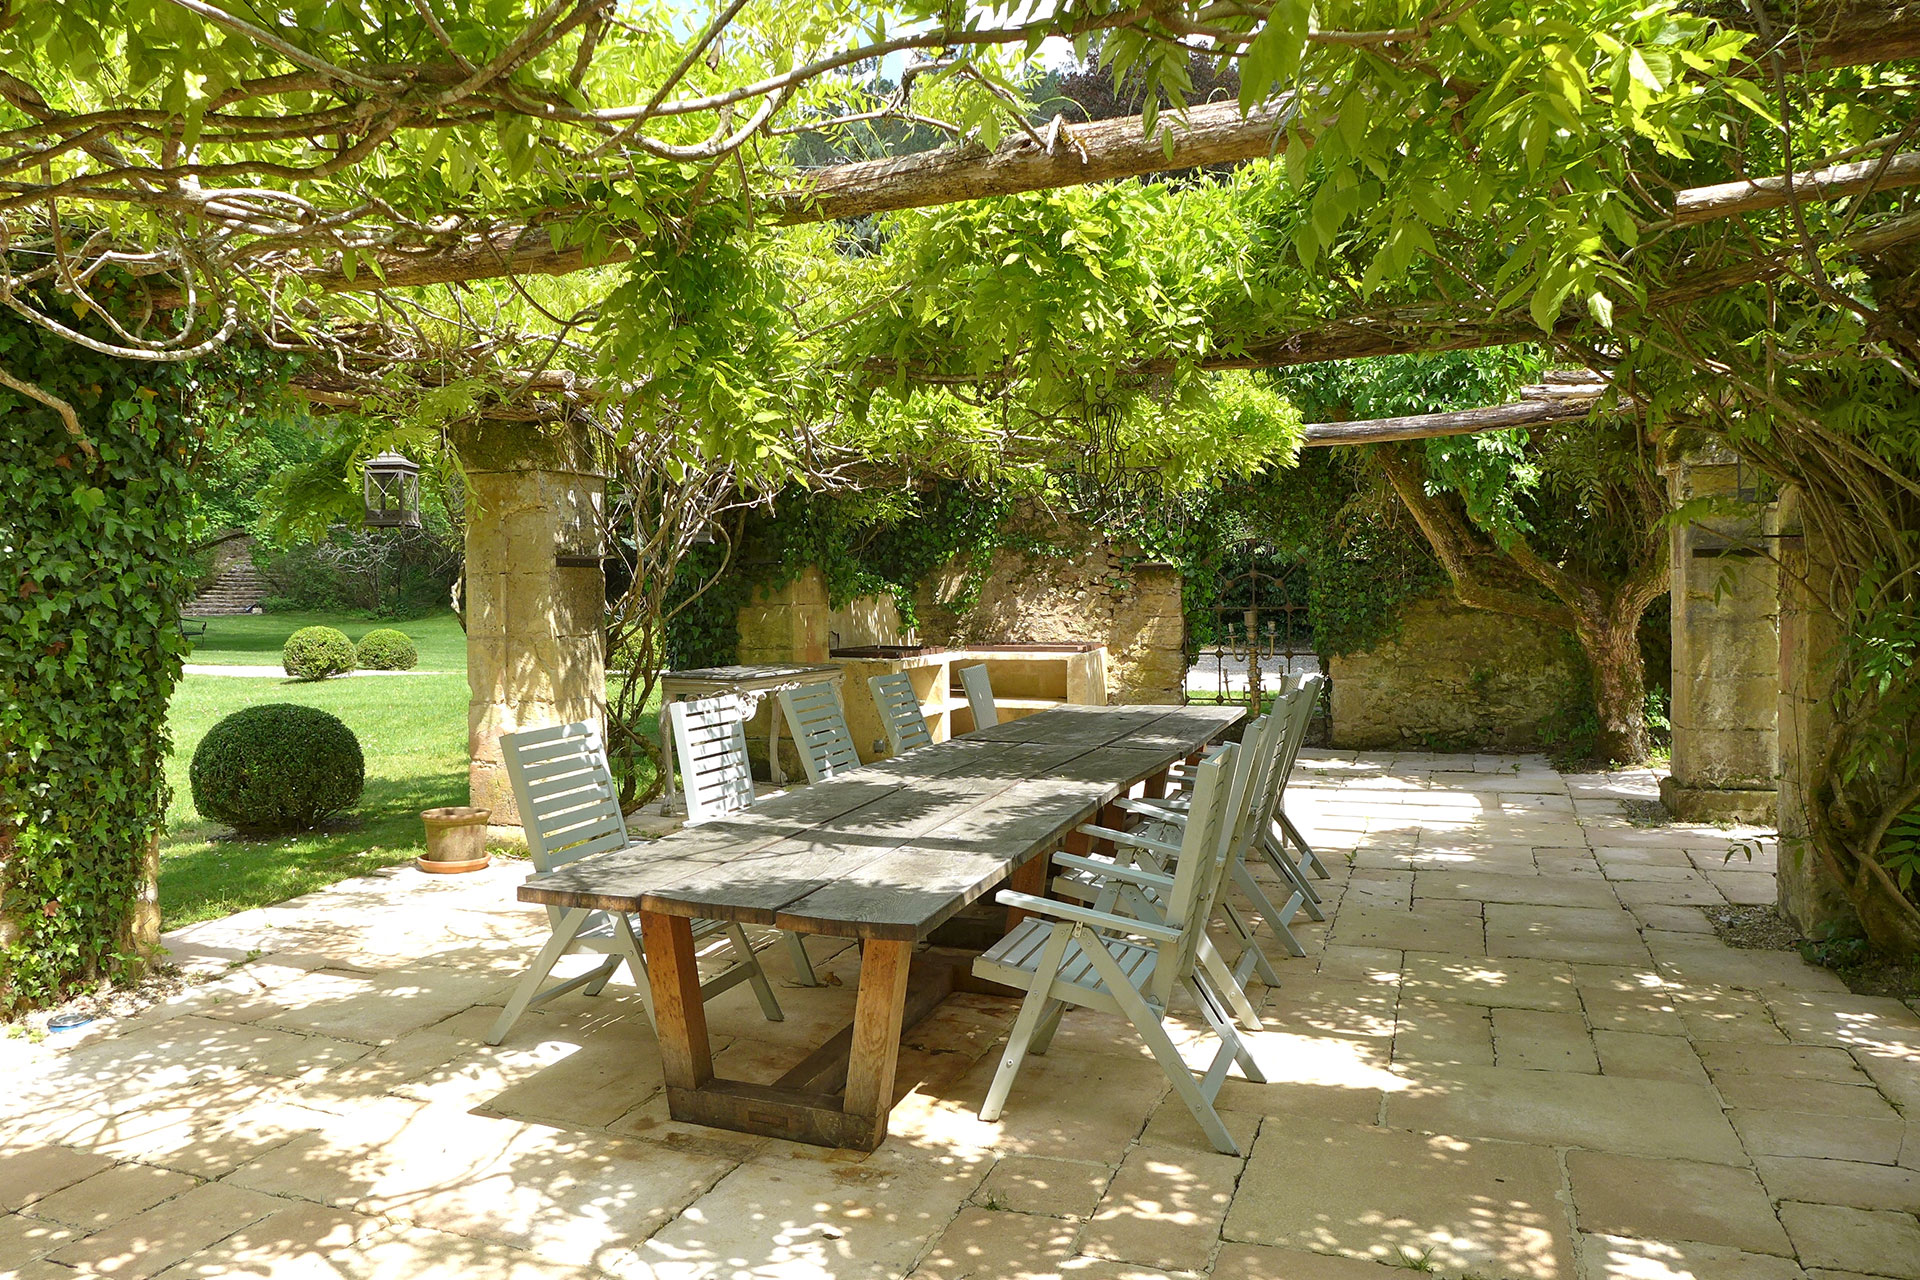 This 182-acre château estate in the Perigord region of the Dordogne features a courtyard garden with a dining terrace and fire pit from which to enjoy delightful summer evenings.